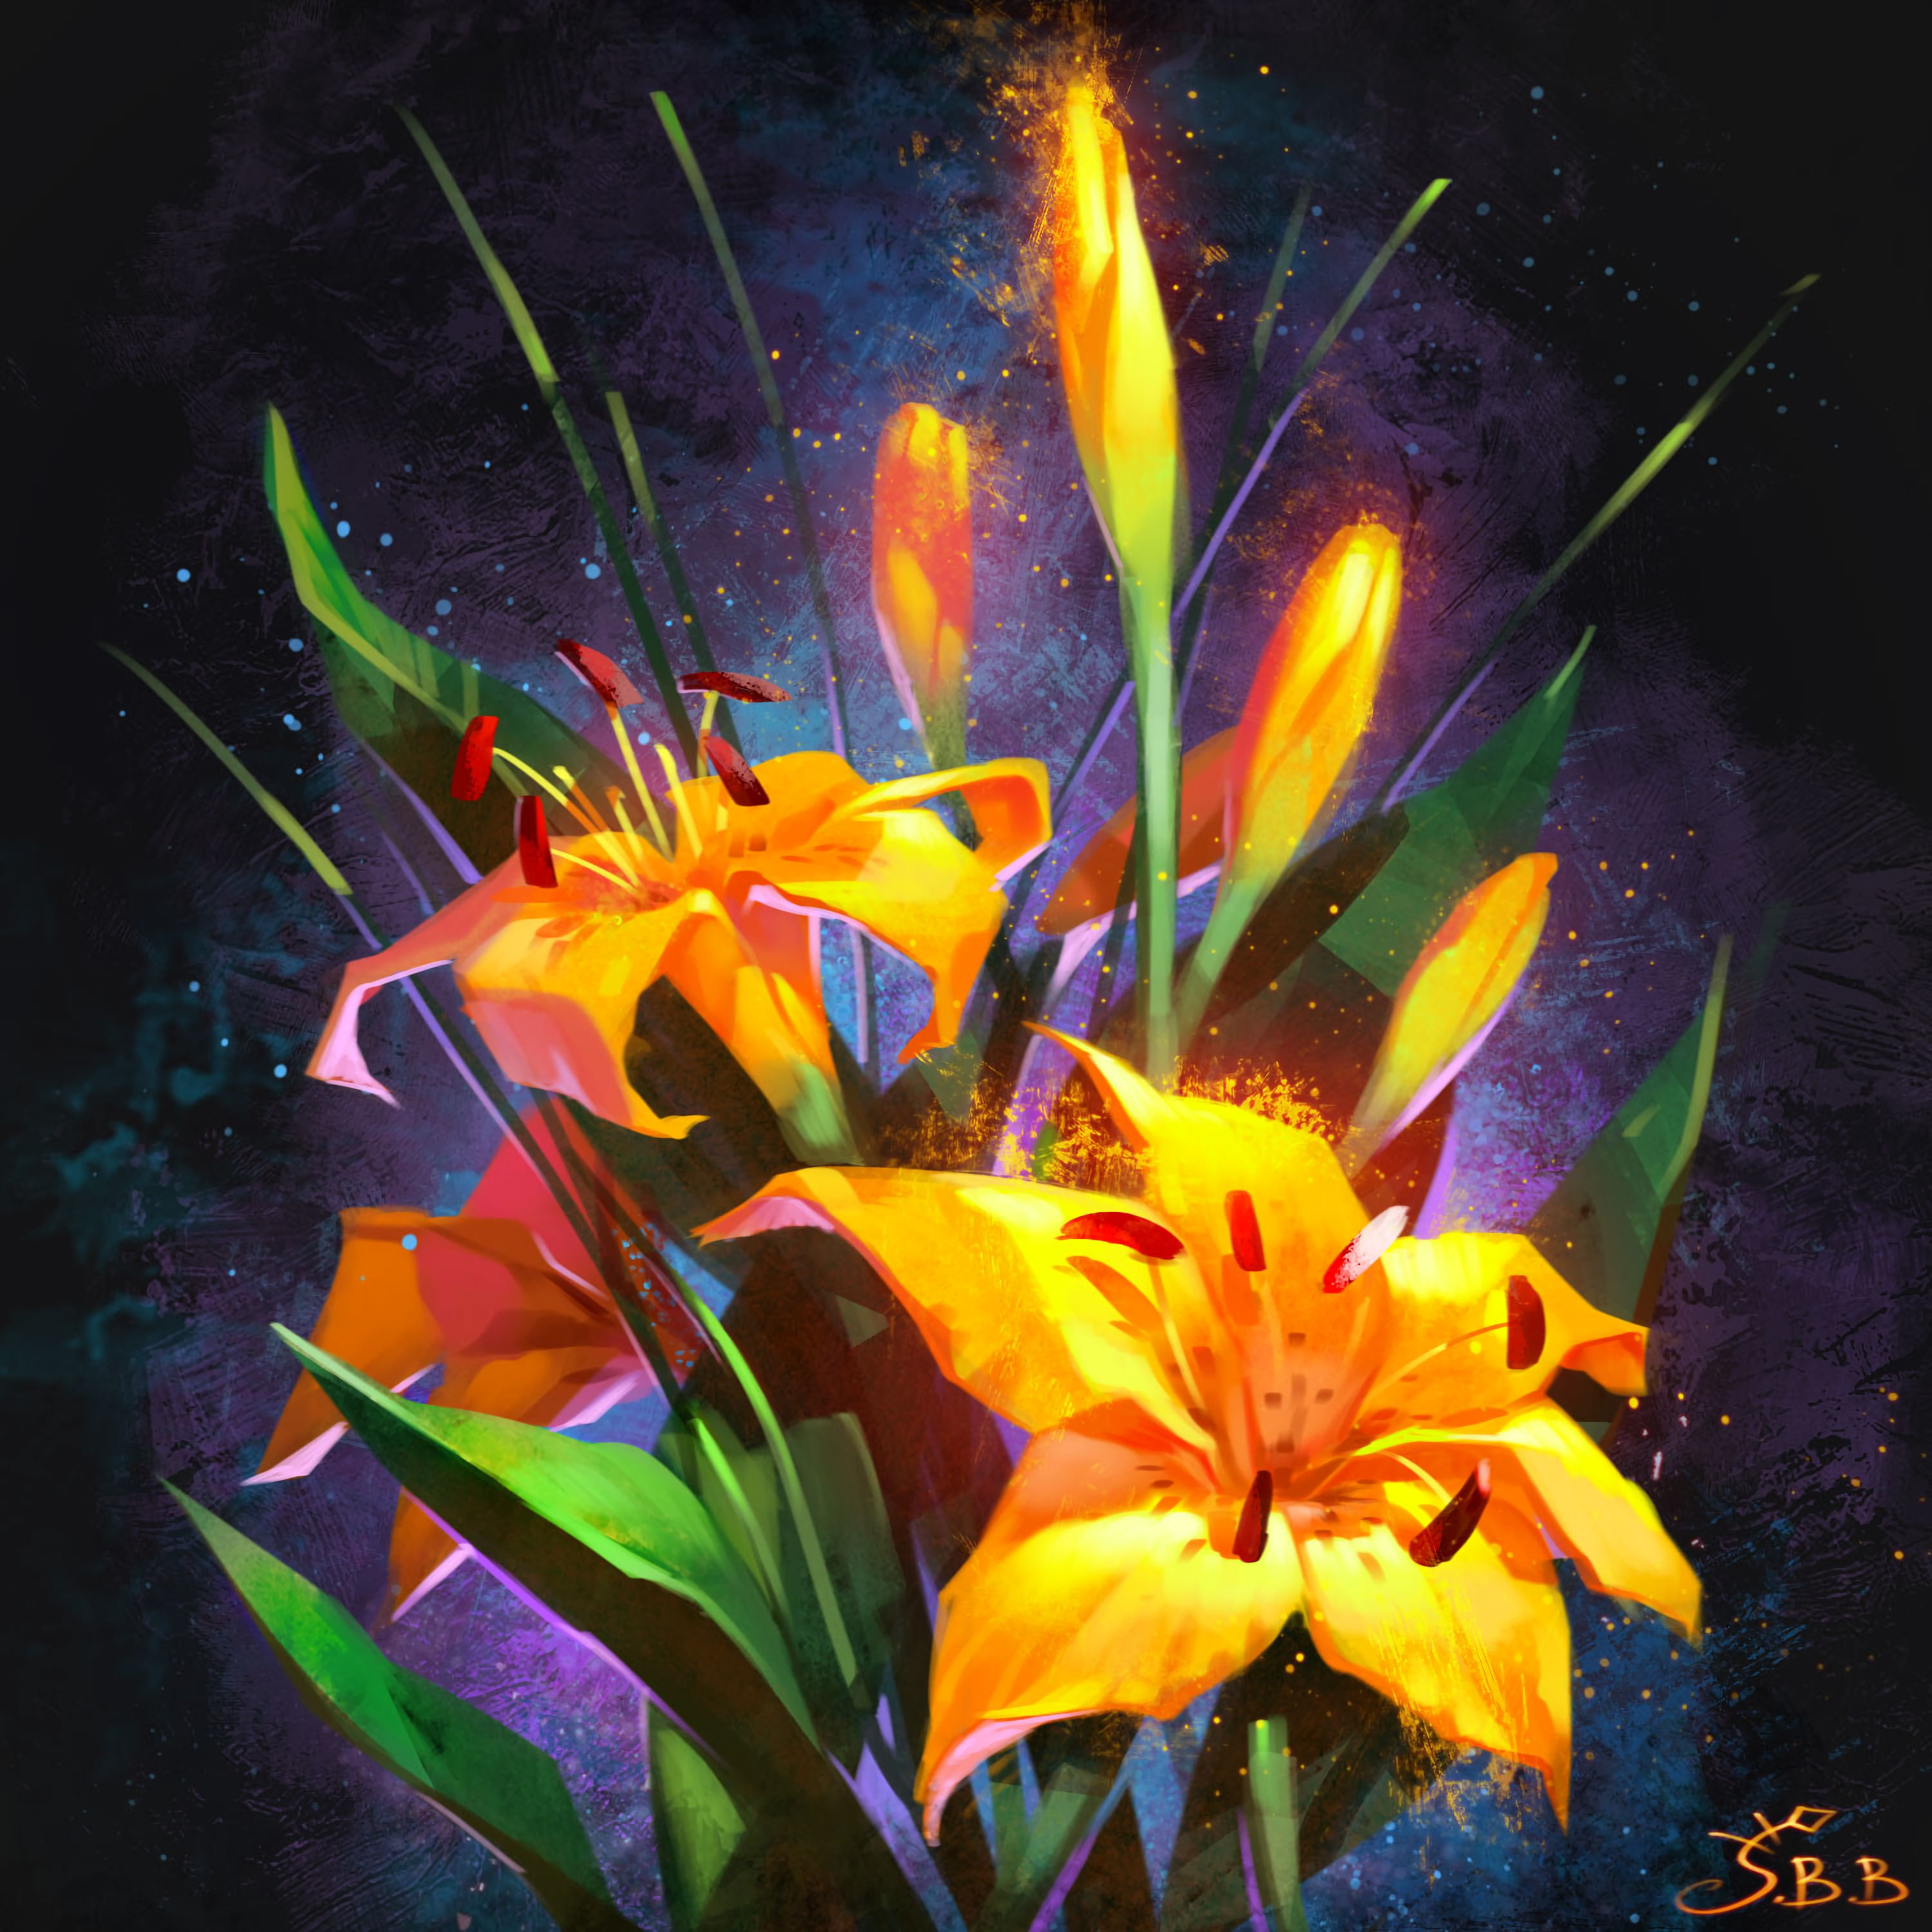 153196 download wallpaper Flowers, Art, Lilies, Bouquet screensavers and pictures for free